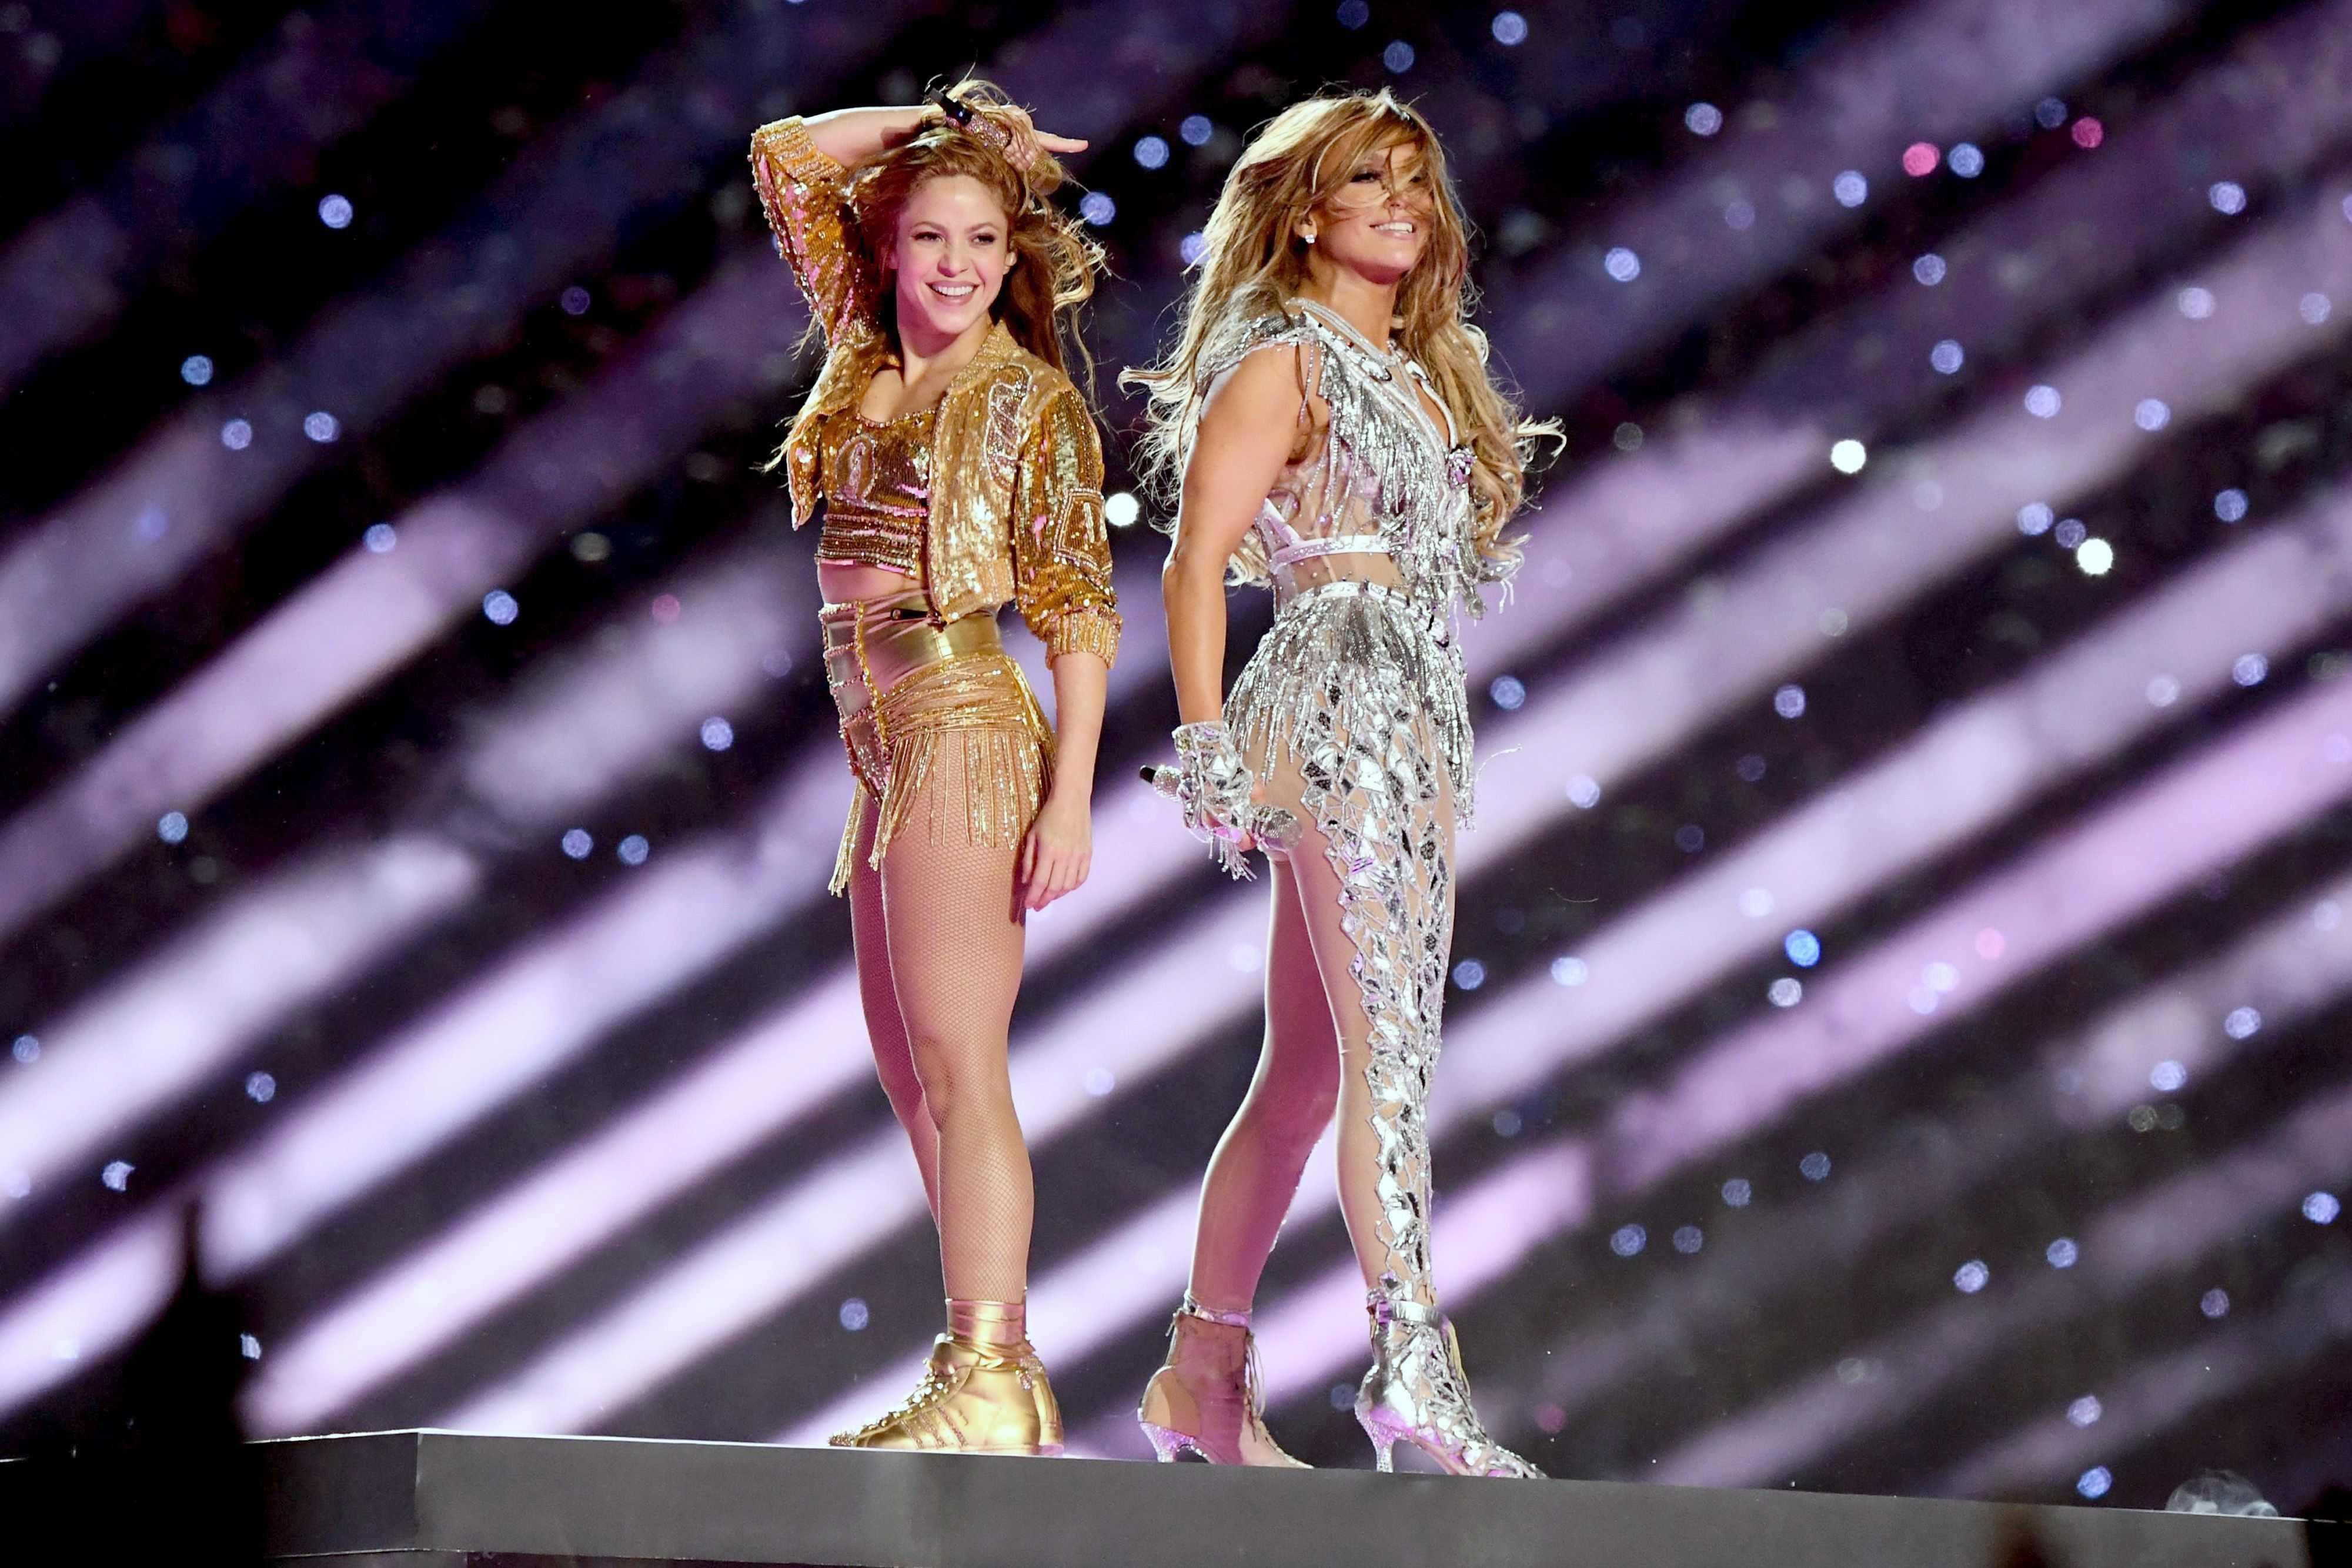 Shakira and Jennifer Lopez performing the 2020 Super Bowl halftime show.